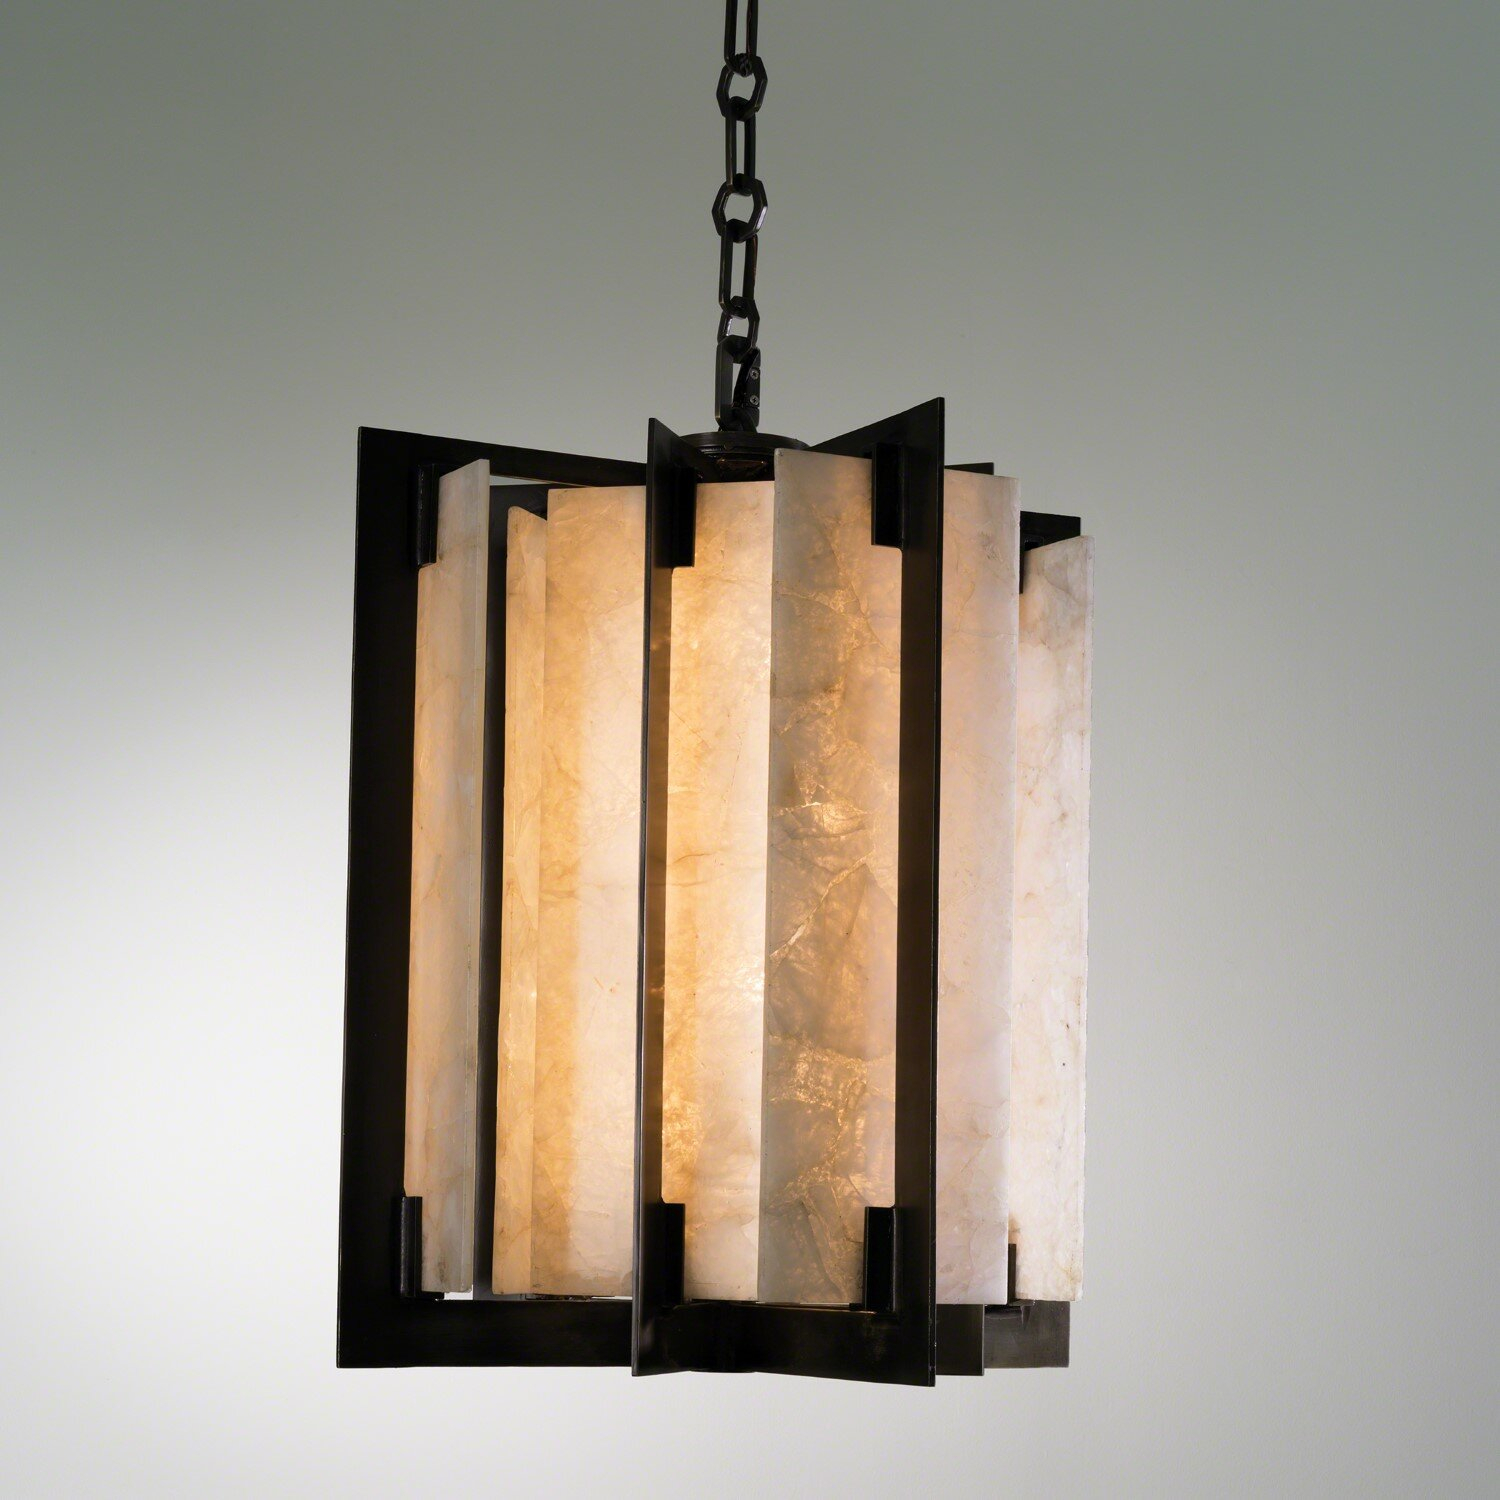 8 Light Lantern Geometric Pendant For Rockland 4 Light Geometric Pendants (View 14 of 30)